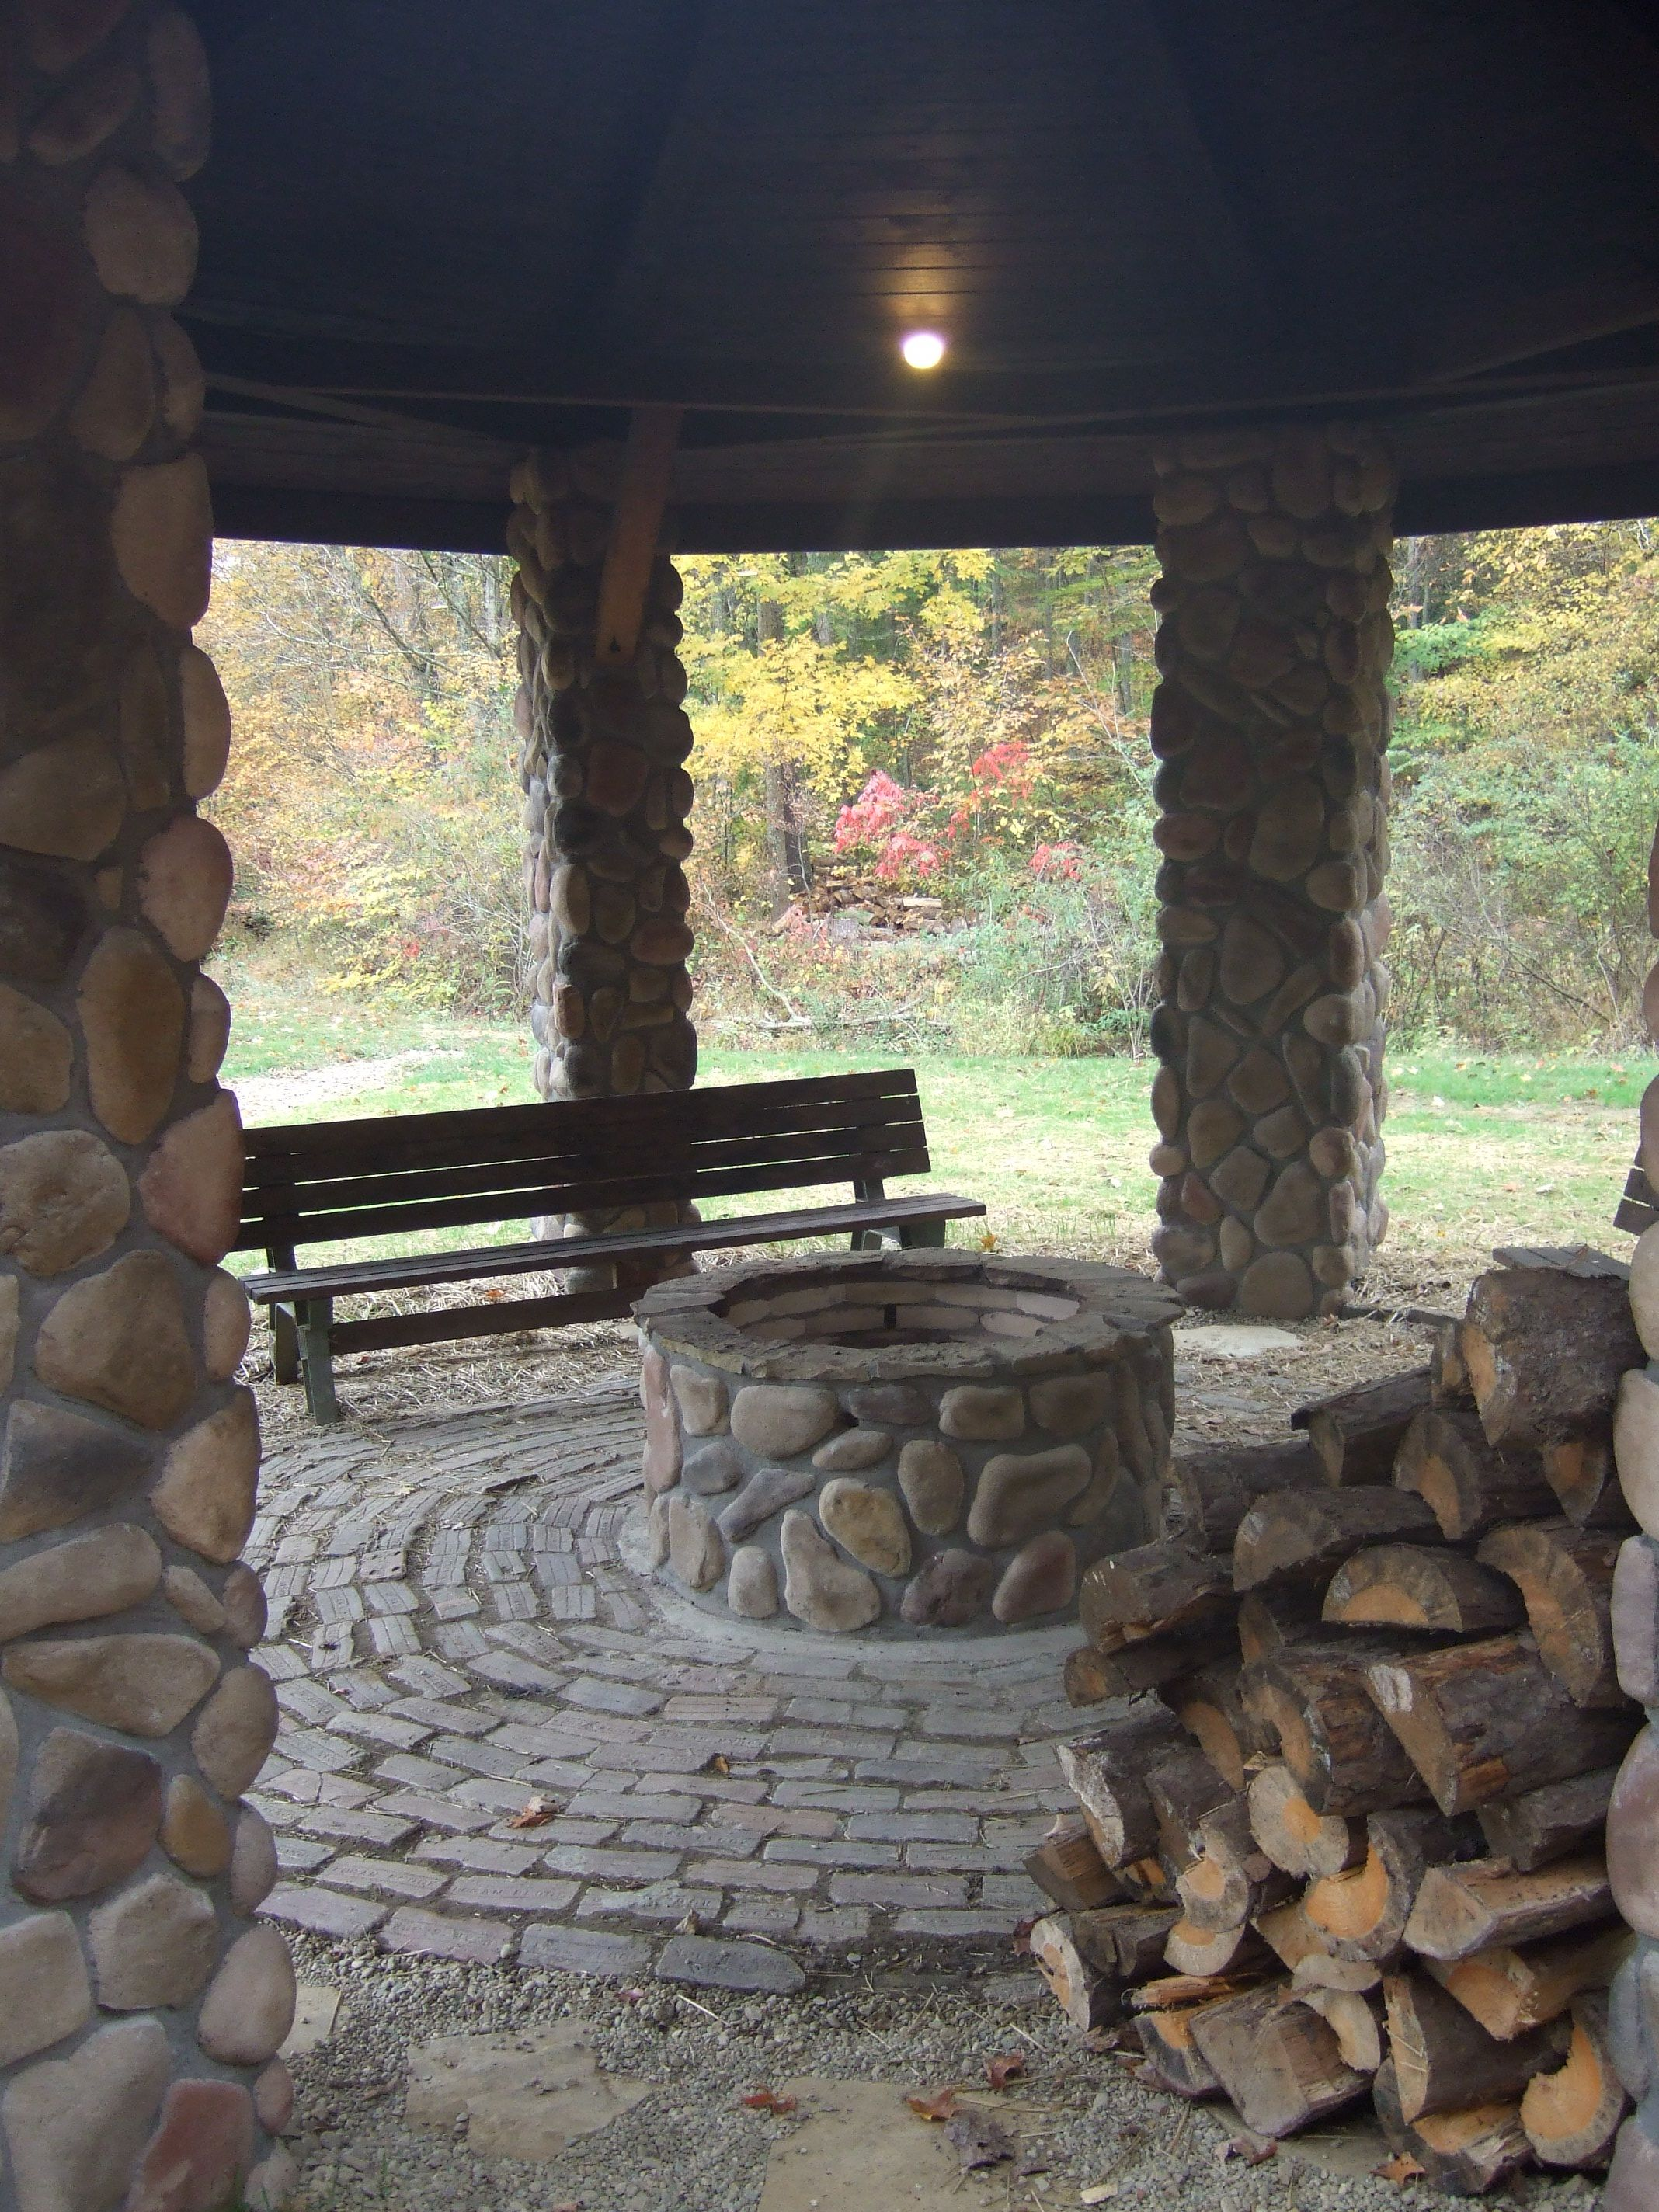 Covered Fire Pit Area Enjoy Campfire All Year